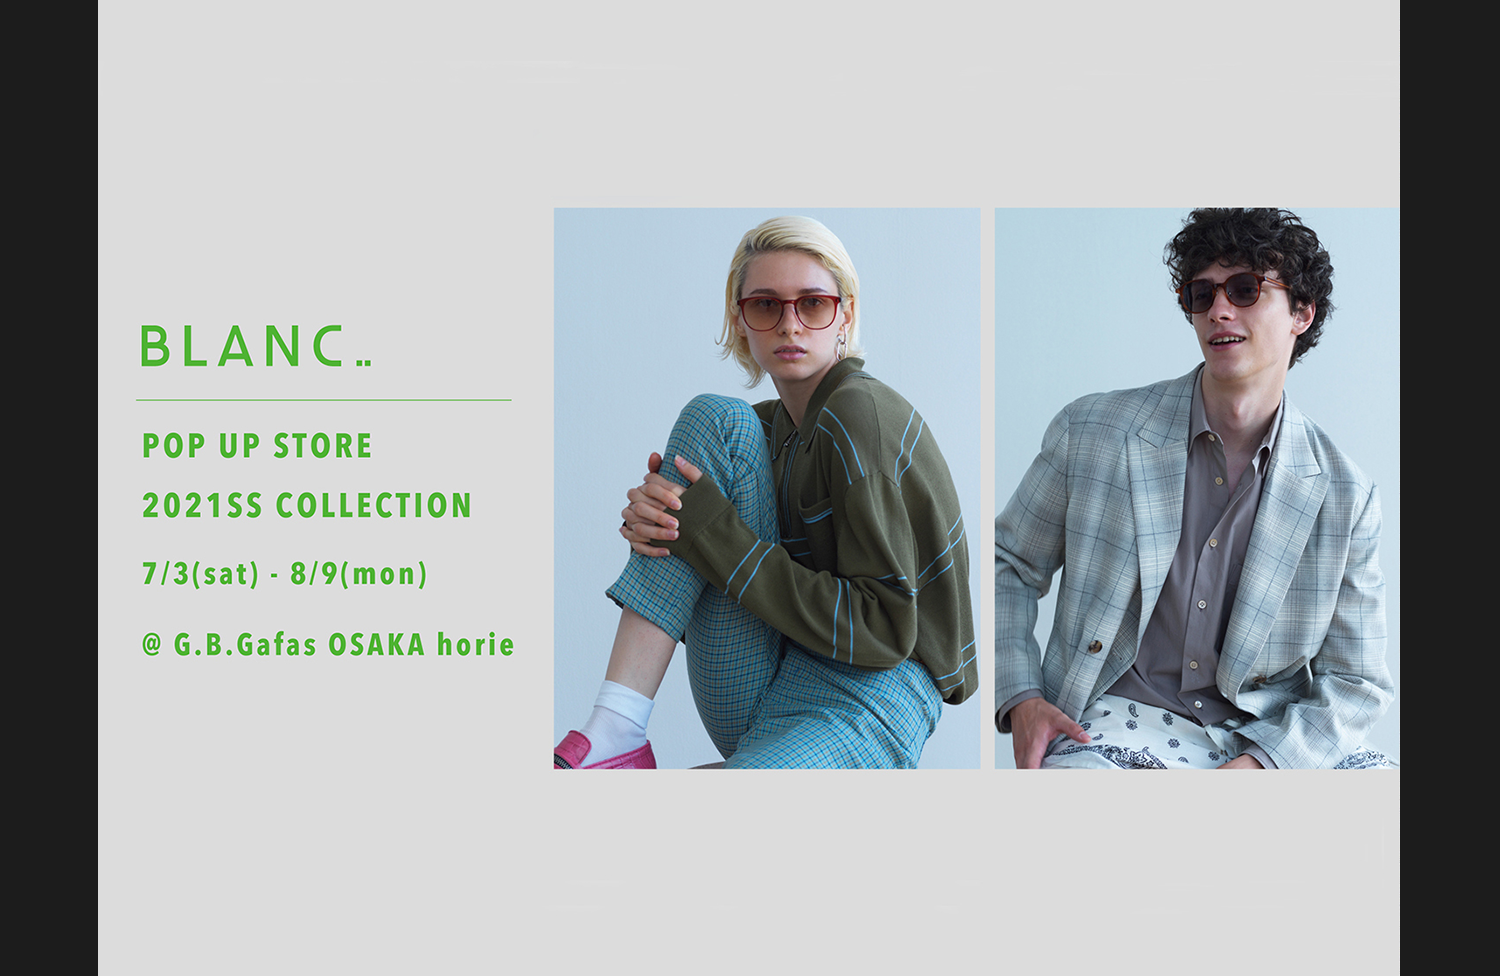 BLANC... POP UP STORE 2021SS COLLECTION 7/3(sat)-8/9(mon)